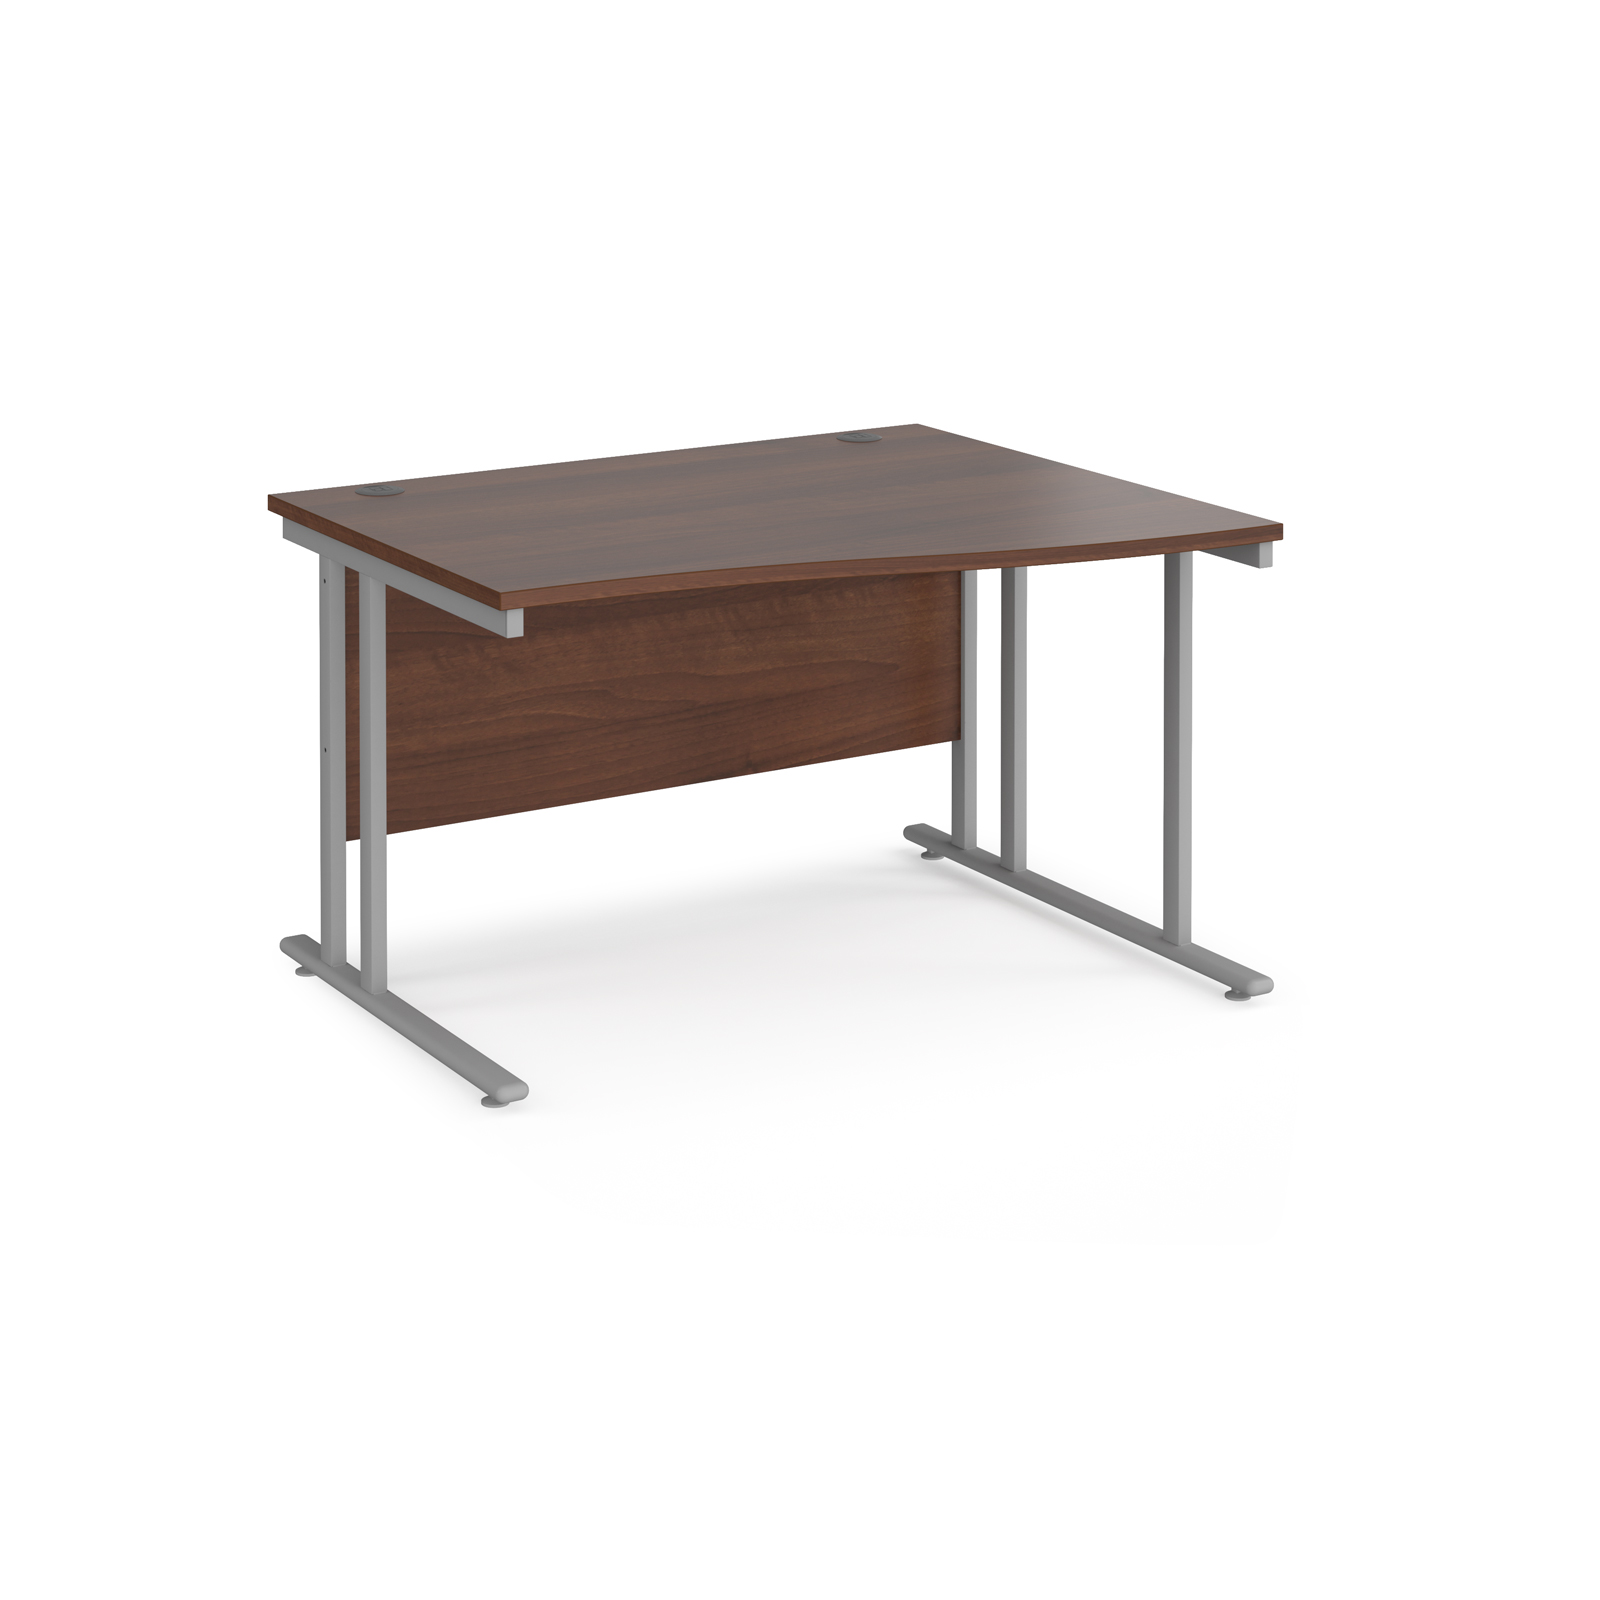 Right Handed Maestro 25 right hand wave desk 1200mm wide - silver cantilever leg frame, walnut top